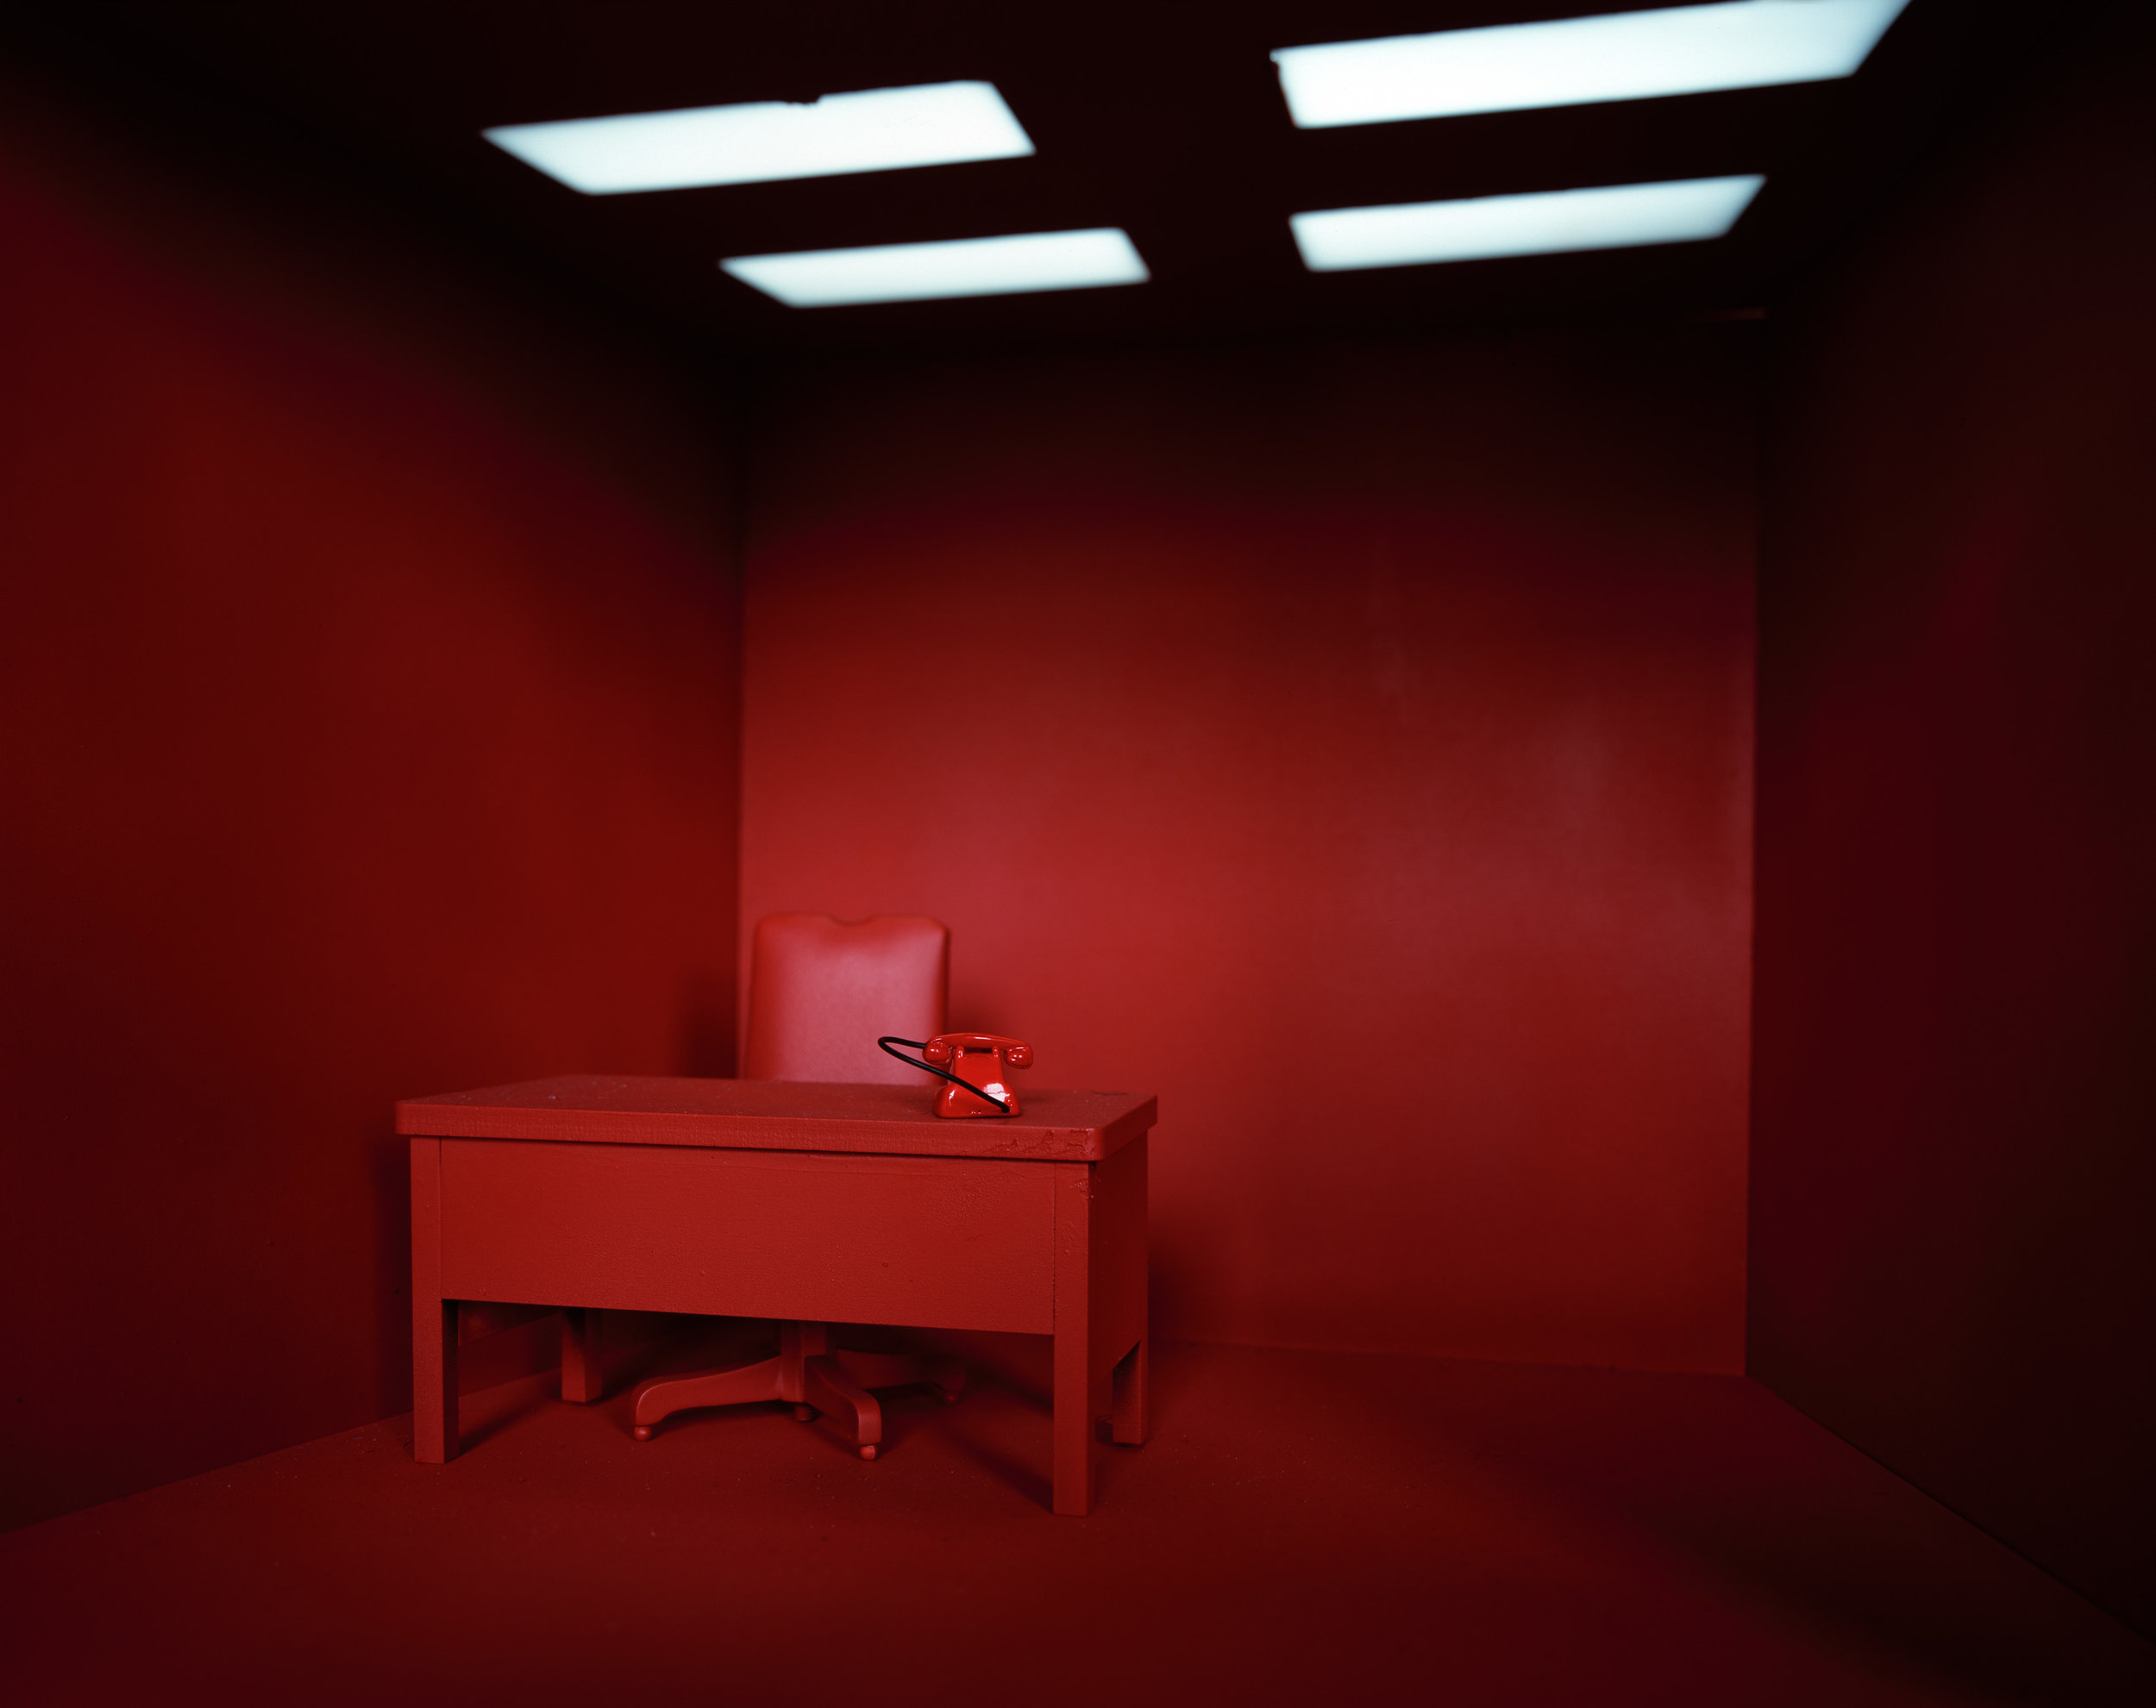 """""""The Red Room (miniature)"""" , 2013 Archival pigment print, 16""""x20""""  Courtesy Yoav Friedlander & Carrie Able Gallery"""